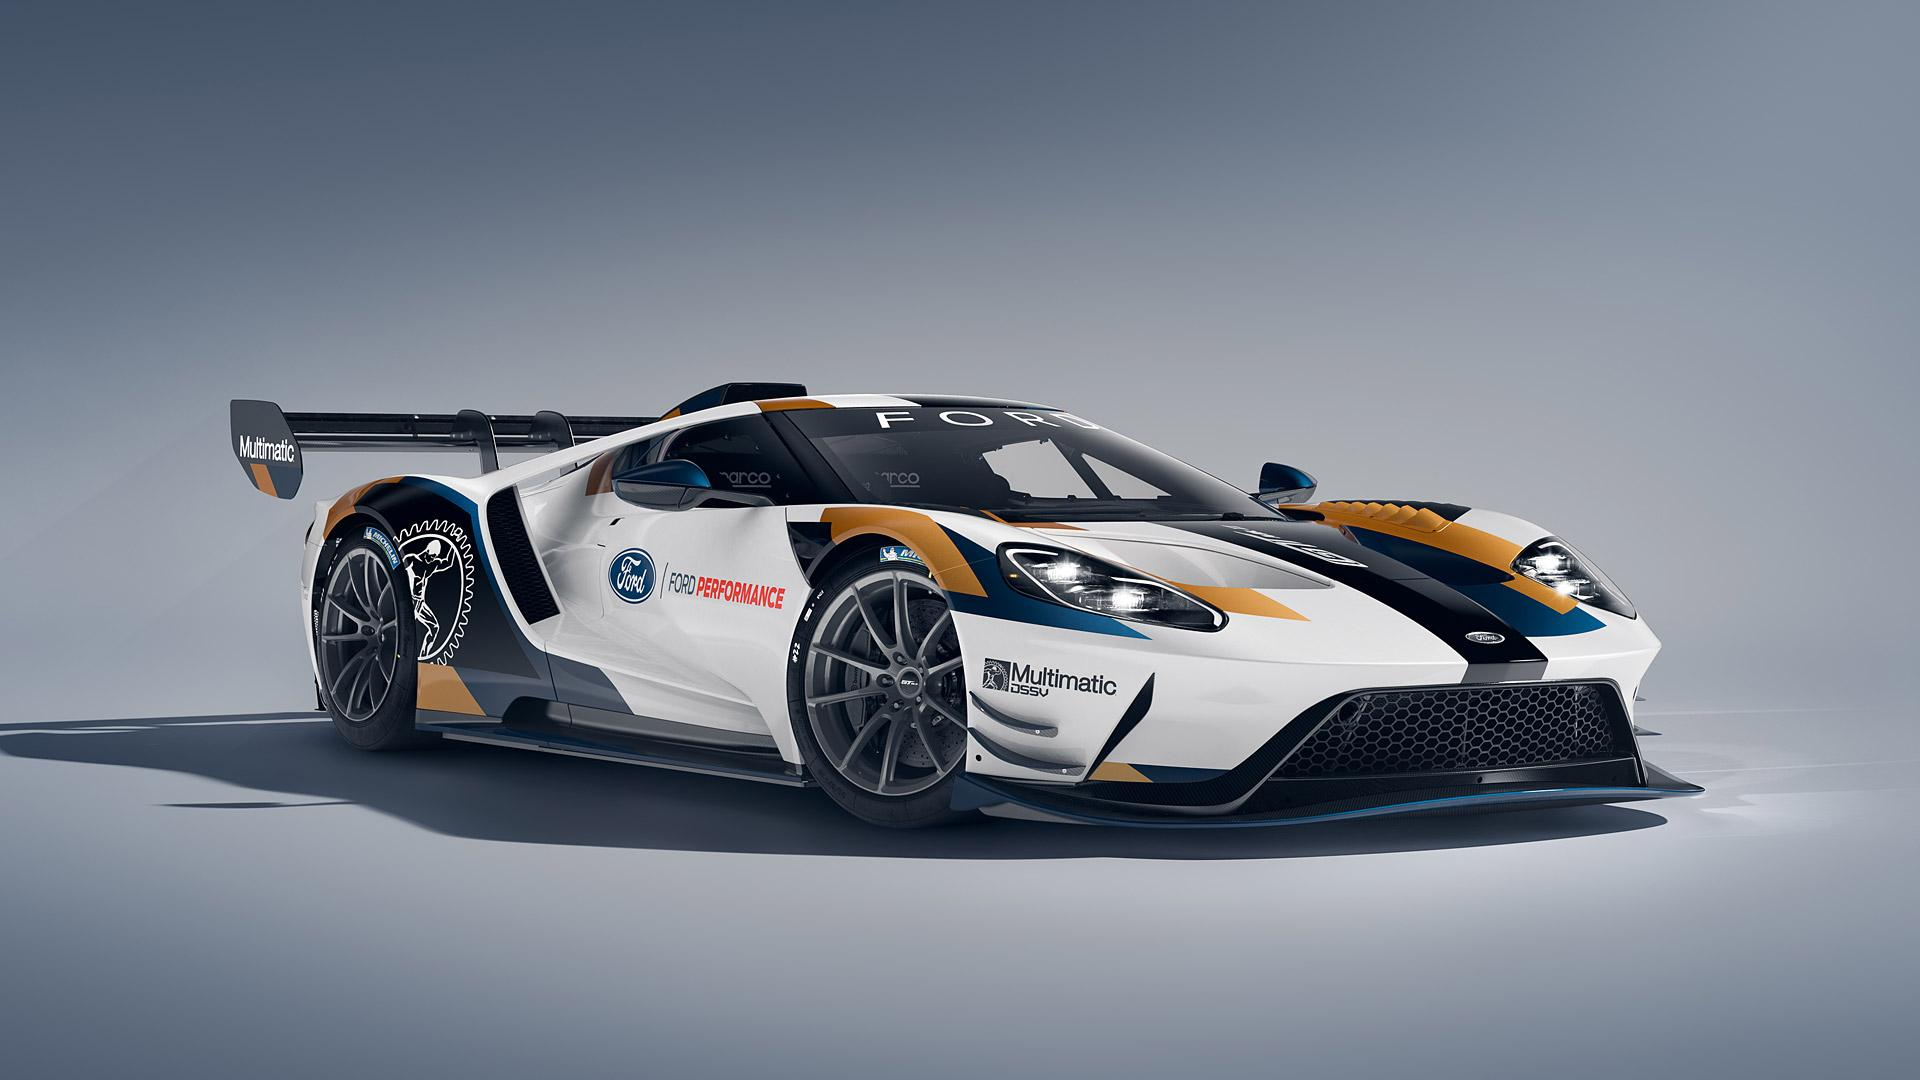 2019 Ford Gt Mk Ii Wallpapers Wallpaper Cave